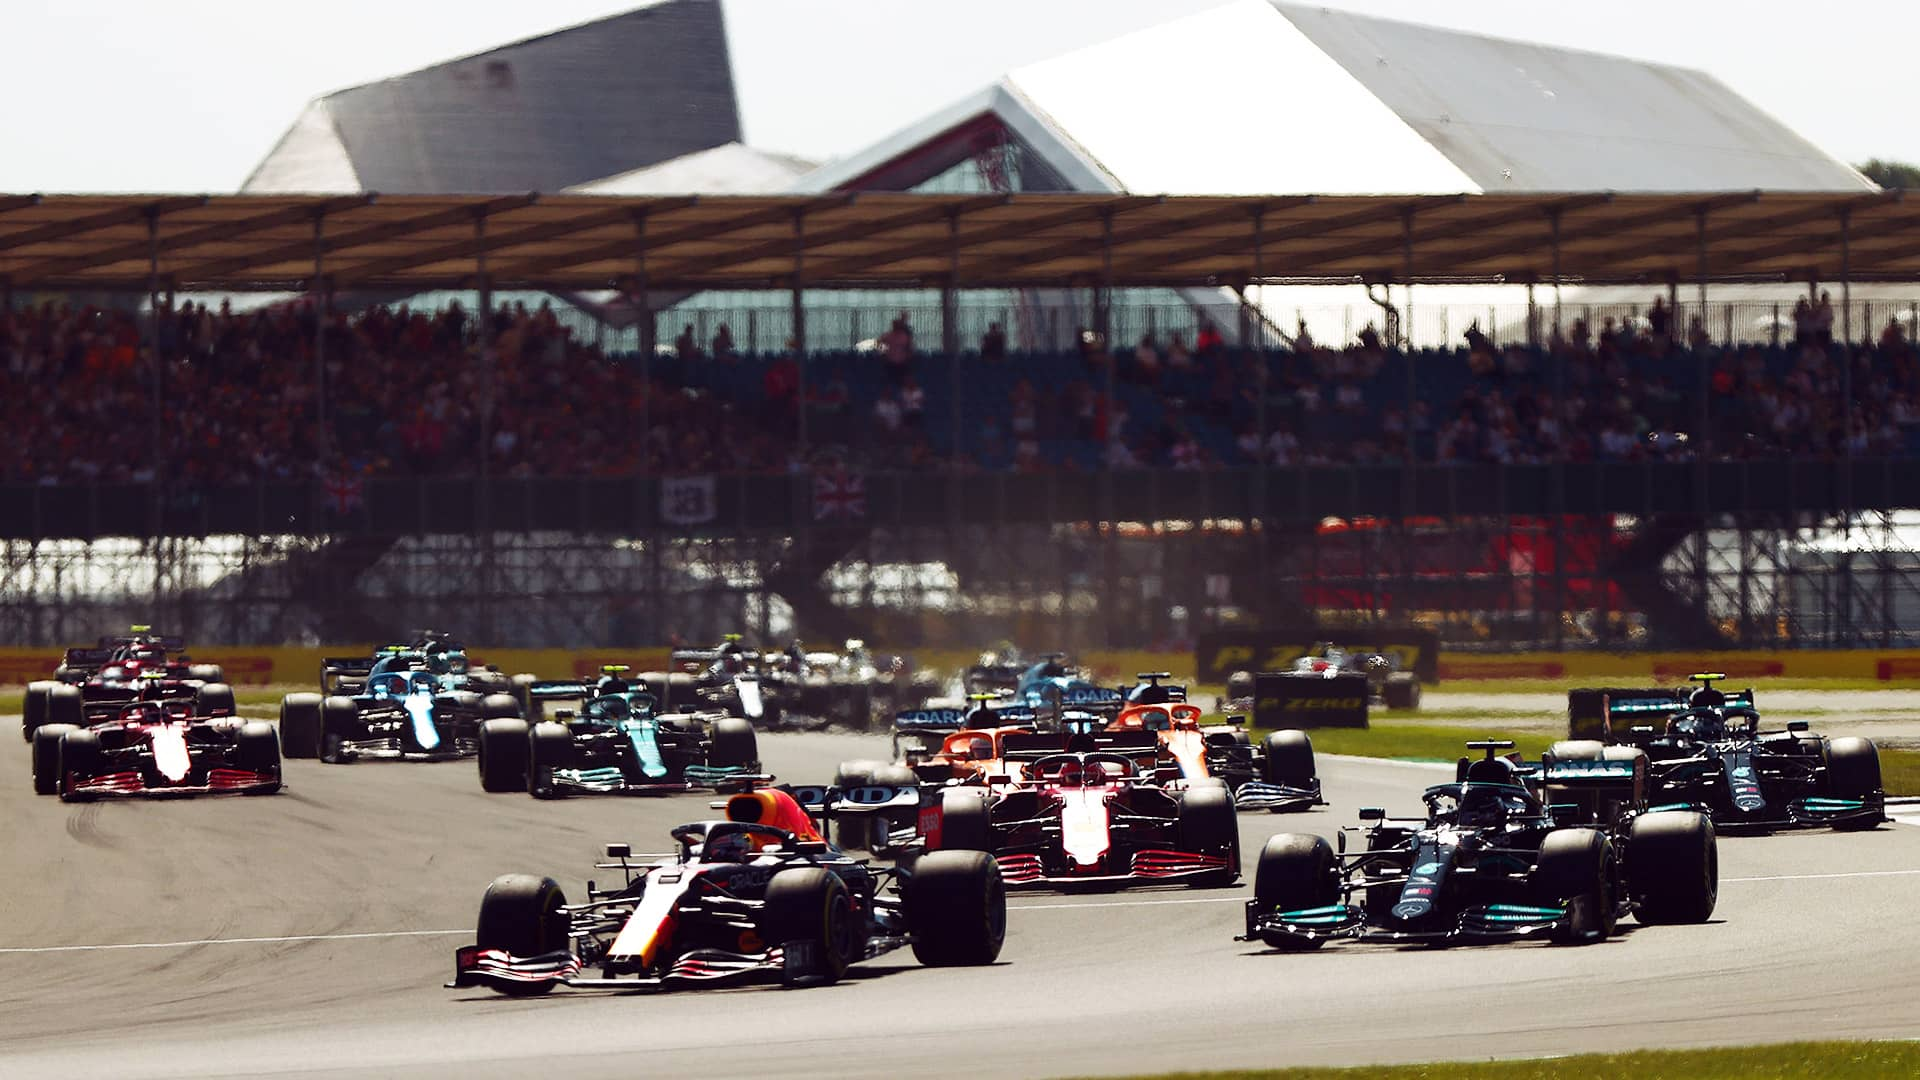 British Grand Prix 2019 - F1 Race